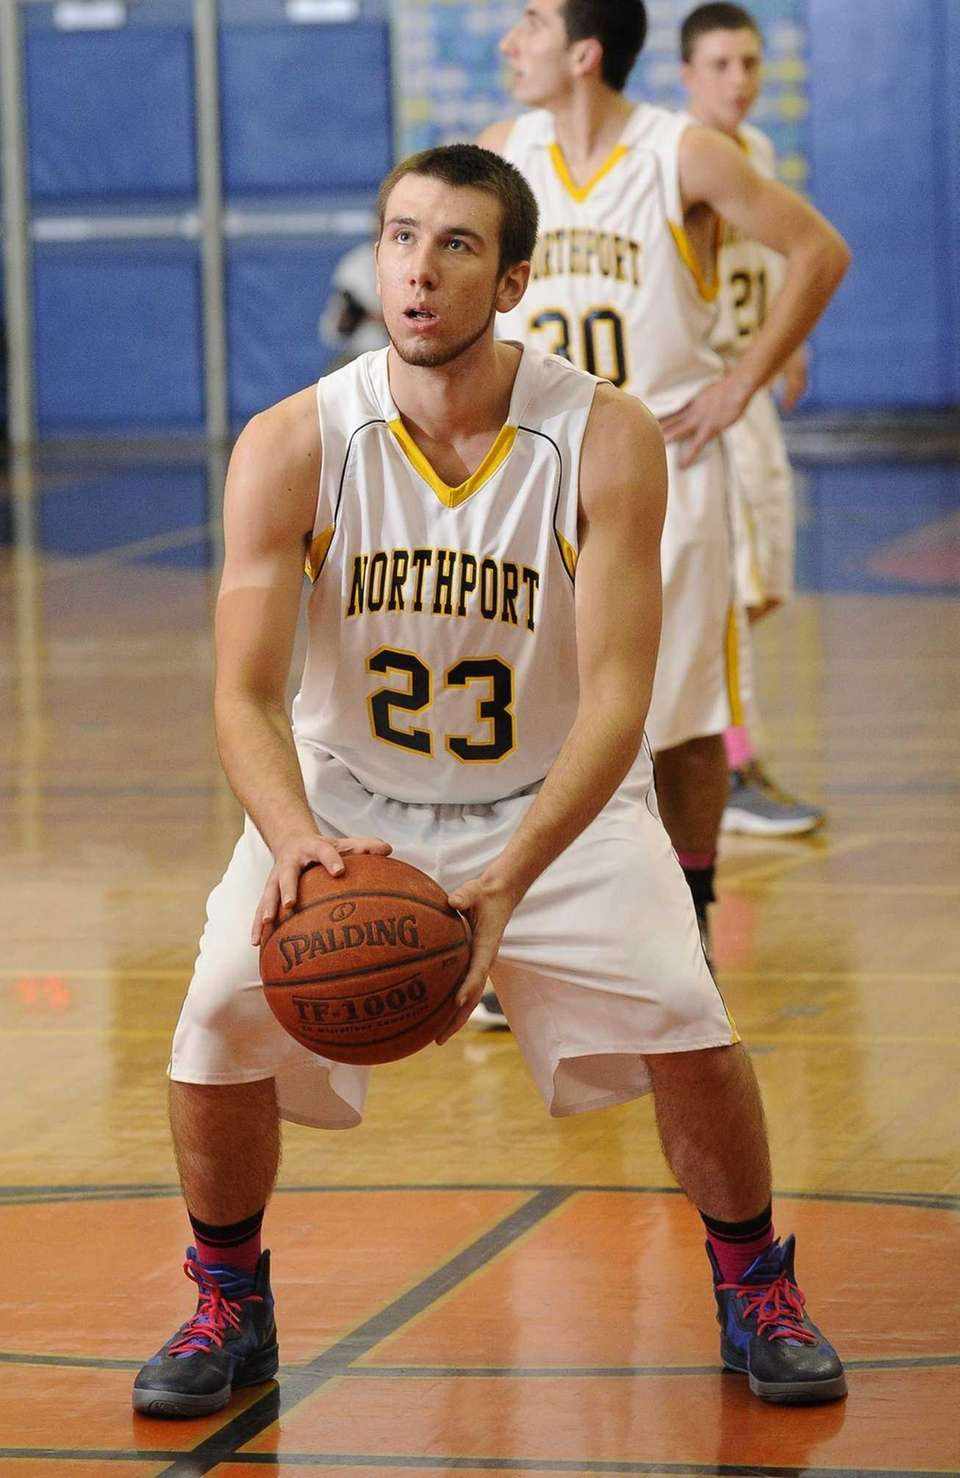 Northport's Andrew Seaman shoots a free throw during